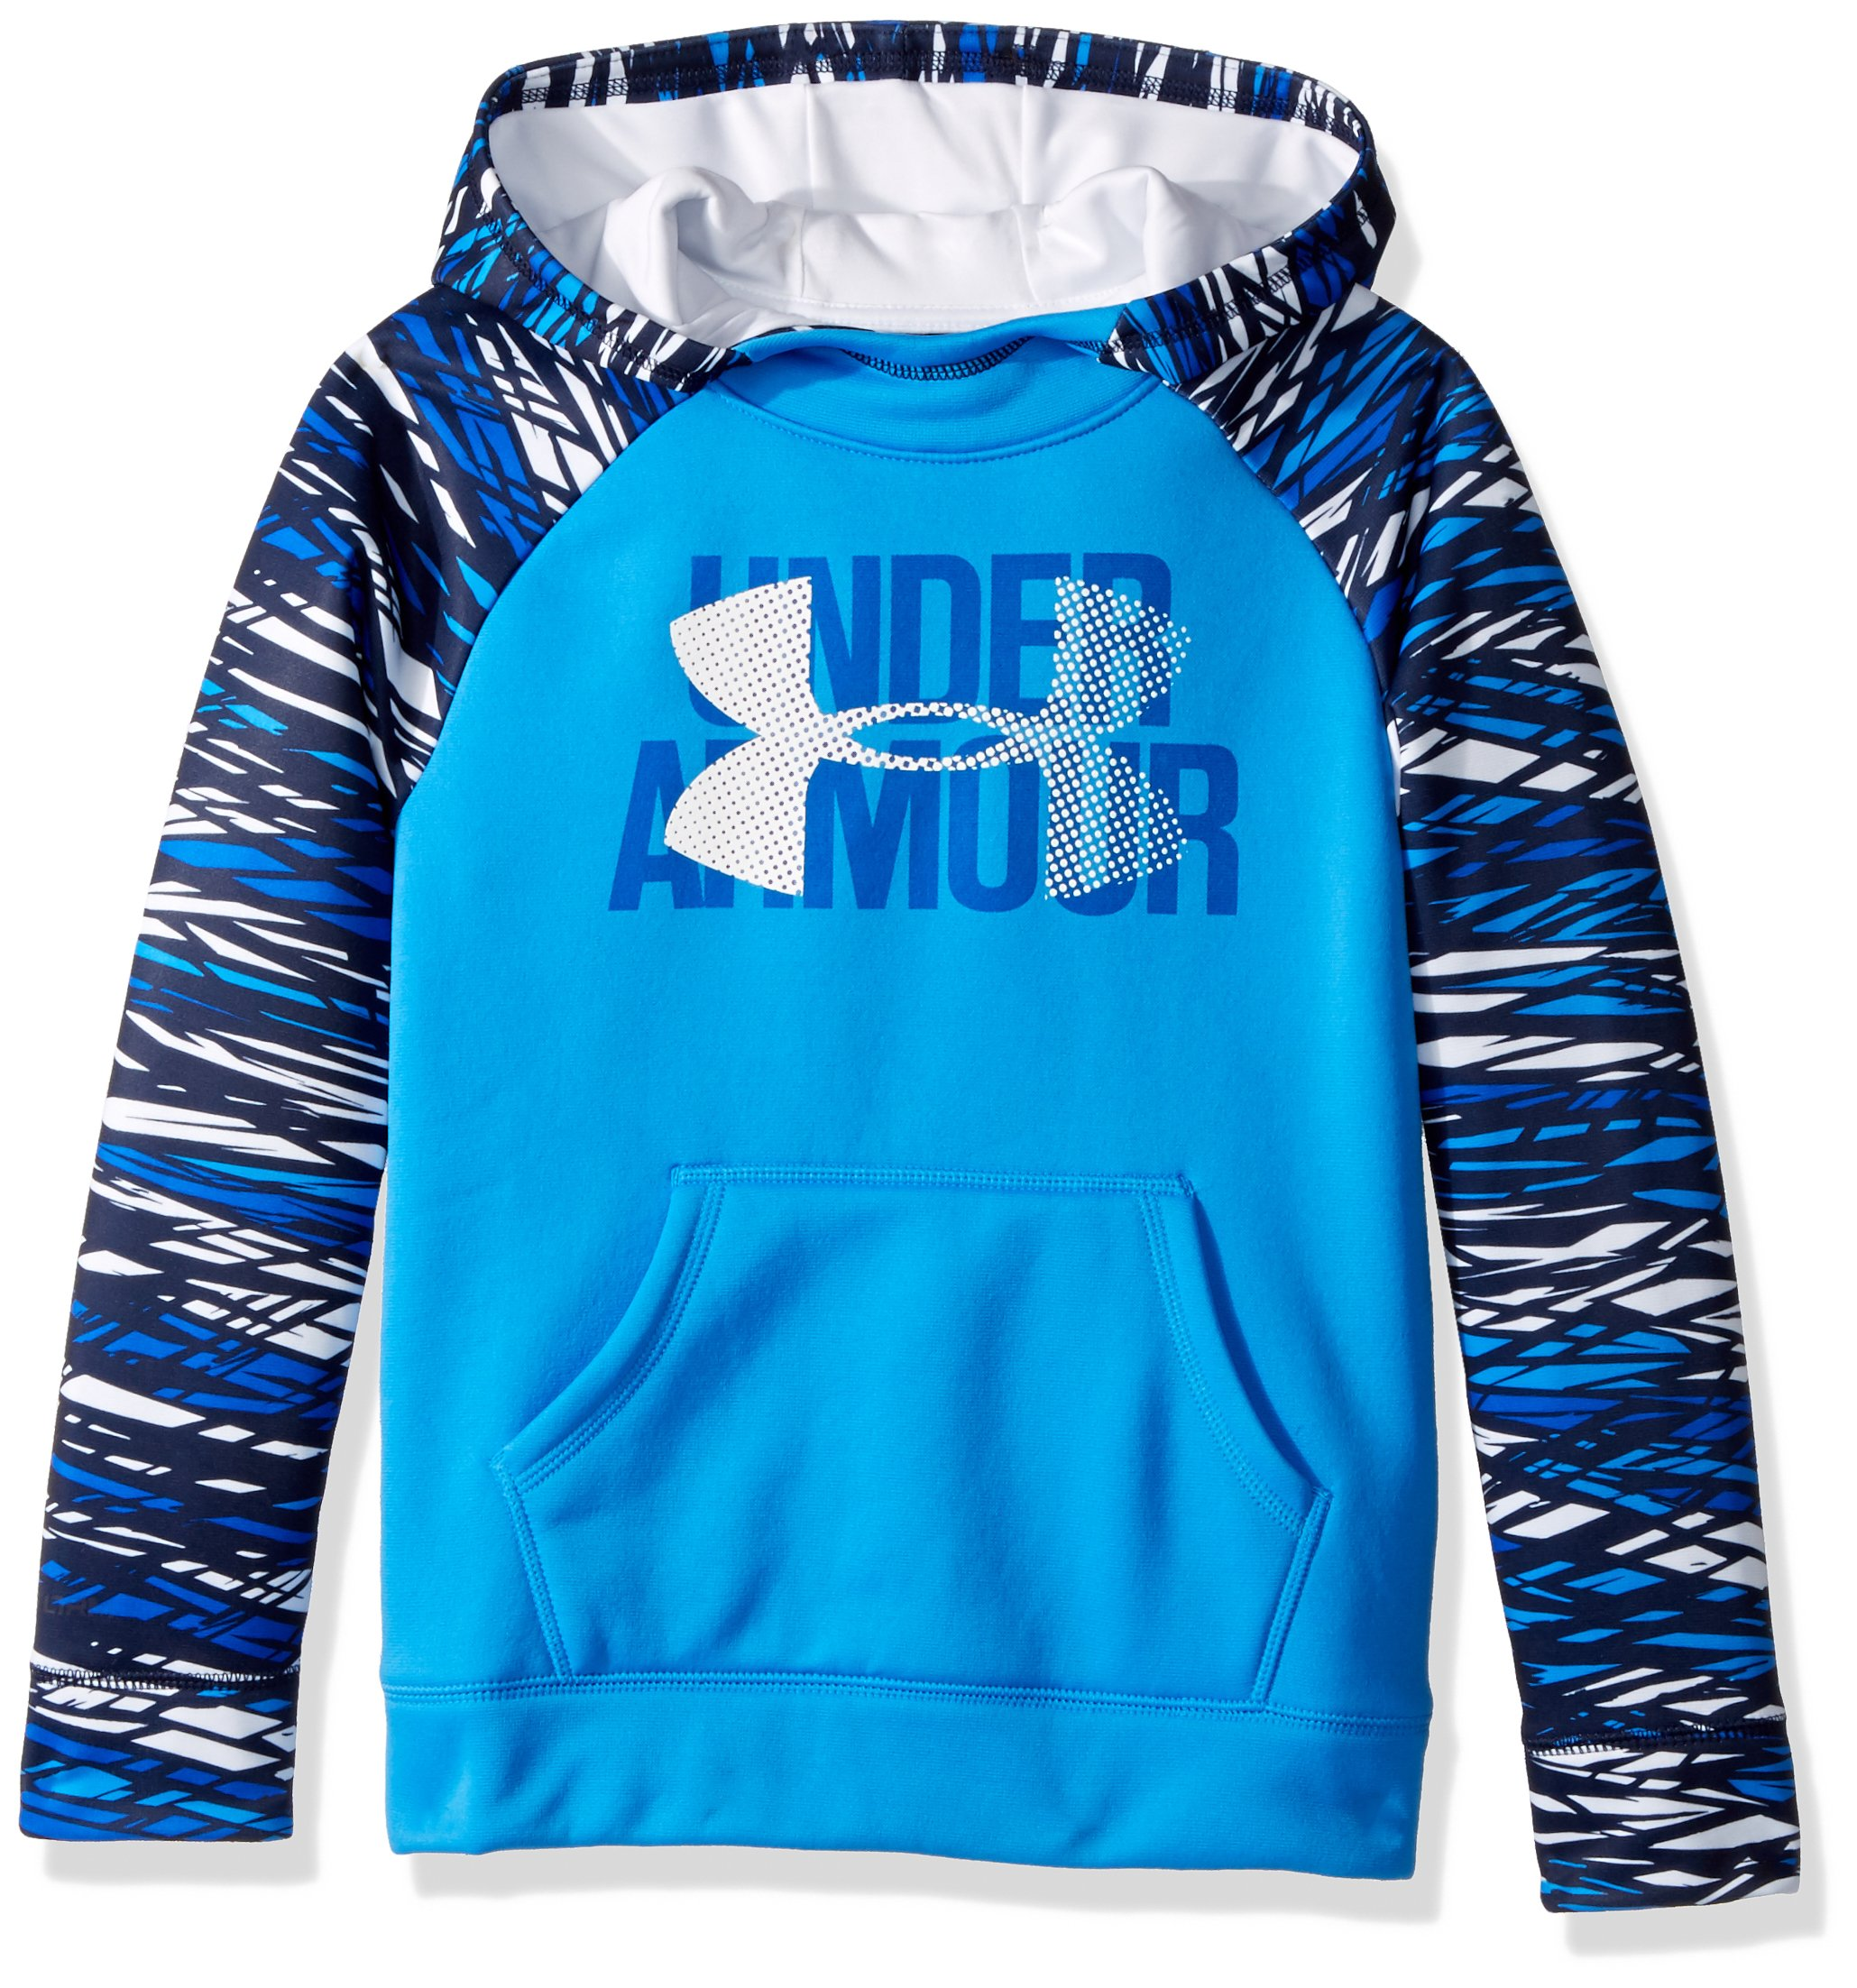 Under Armour Girls' Armour Fleece Big Logo Printed Hoodie, Mako Blue (983)/White, Youth X-Small by Under Armour